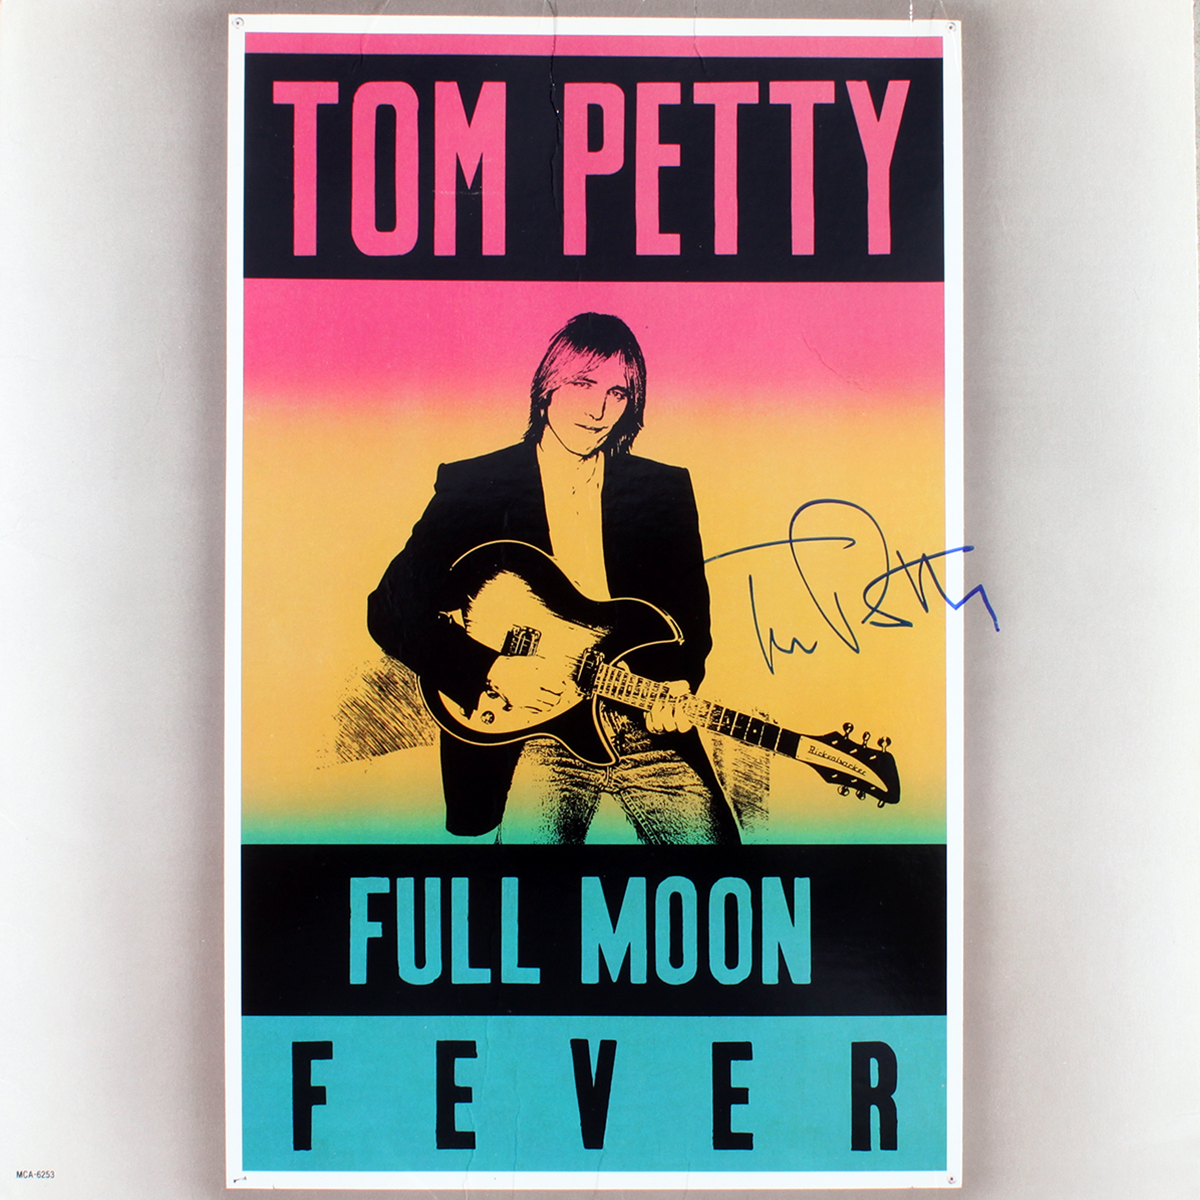 Tom Petty - Full Moon Fever LP #1